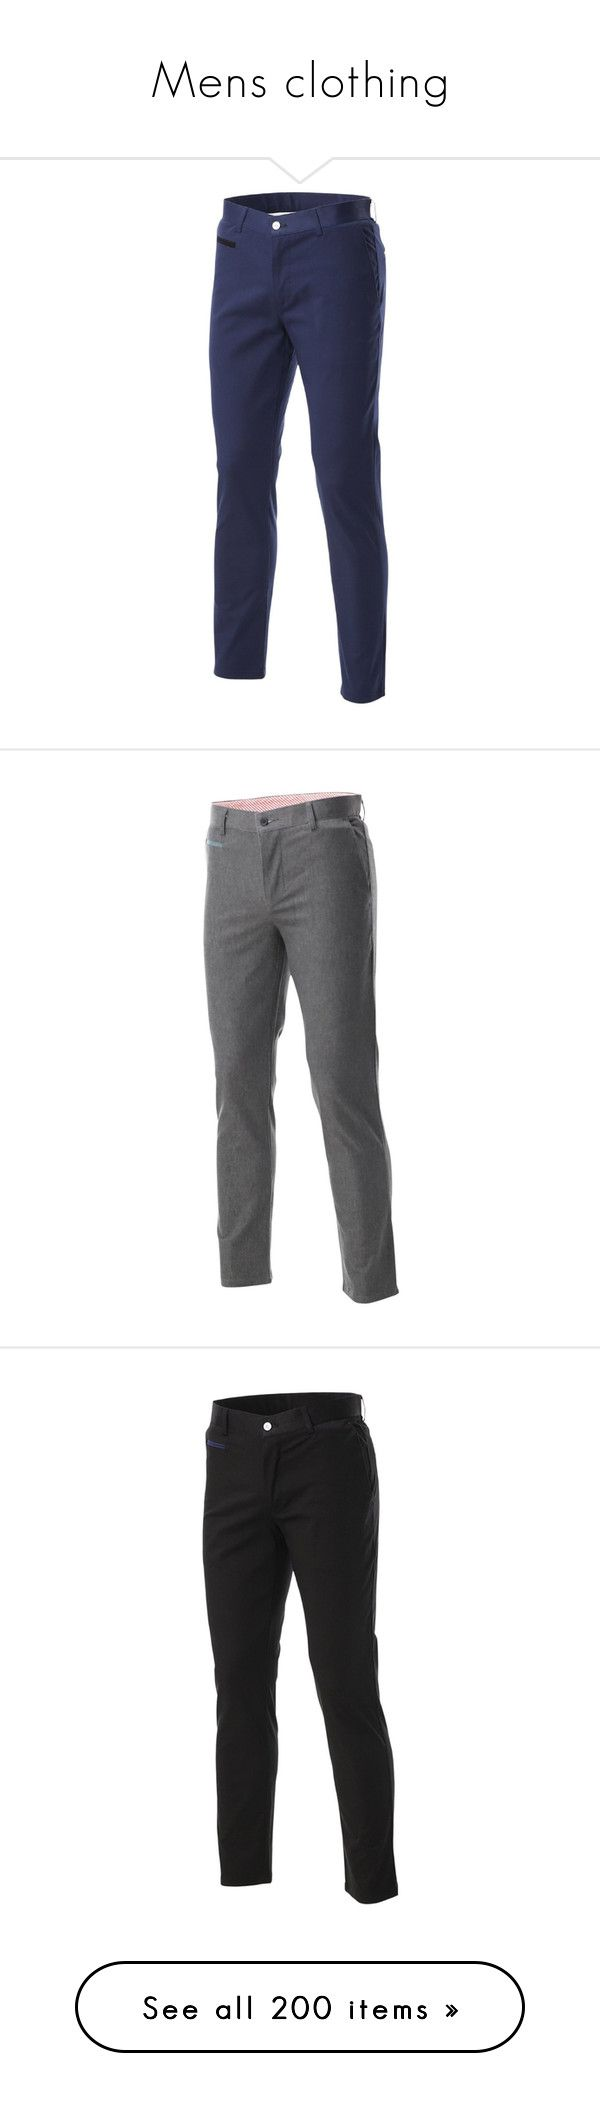 """""""Mens clothing"""" by gracewoods ❤ liked on Polyvore featuring men's fashion, men's clothing, men's pants, men's casual pants, mens slim fit chino pants, mens slim fit pants, mens chino pants, mens chinos pants, mens slim pants and flatseven"""